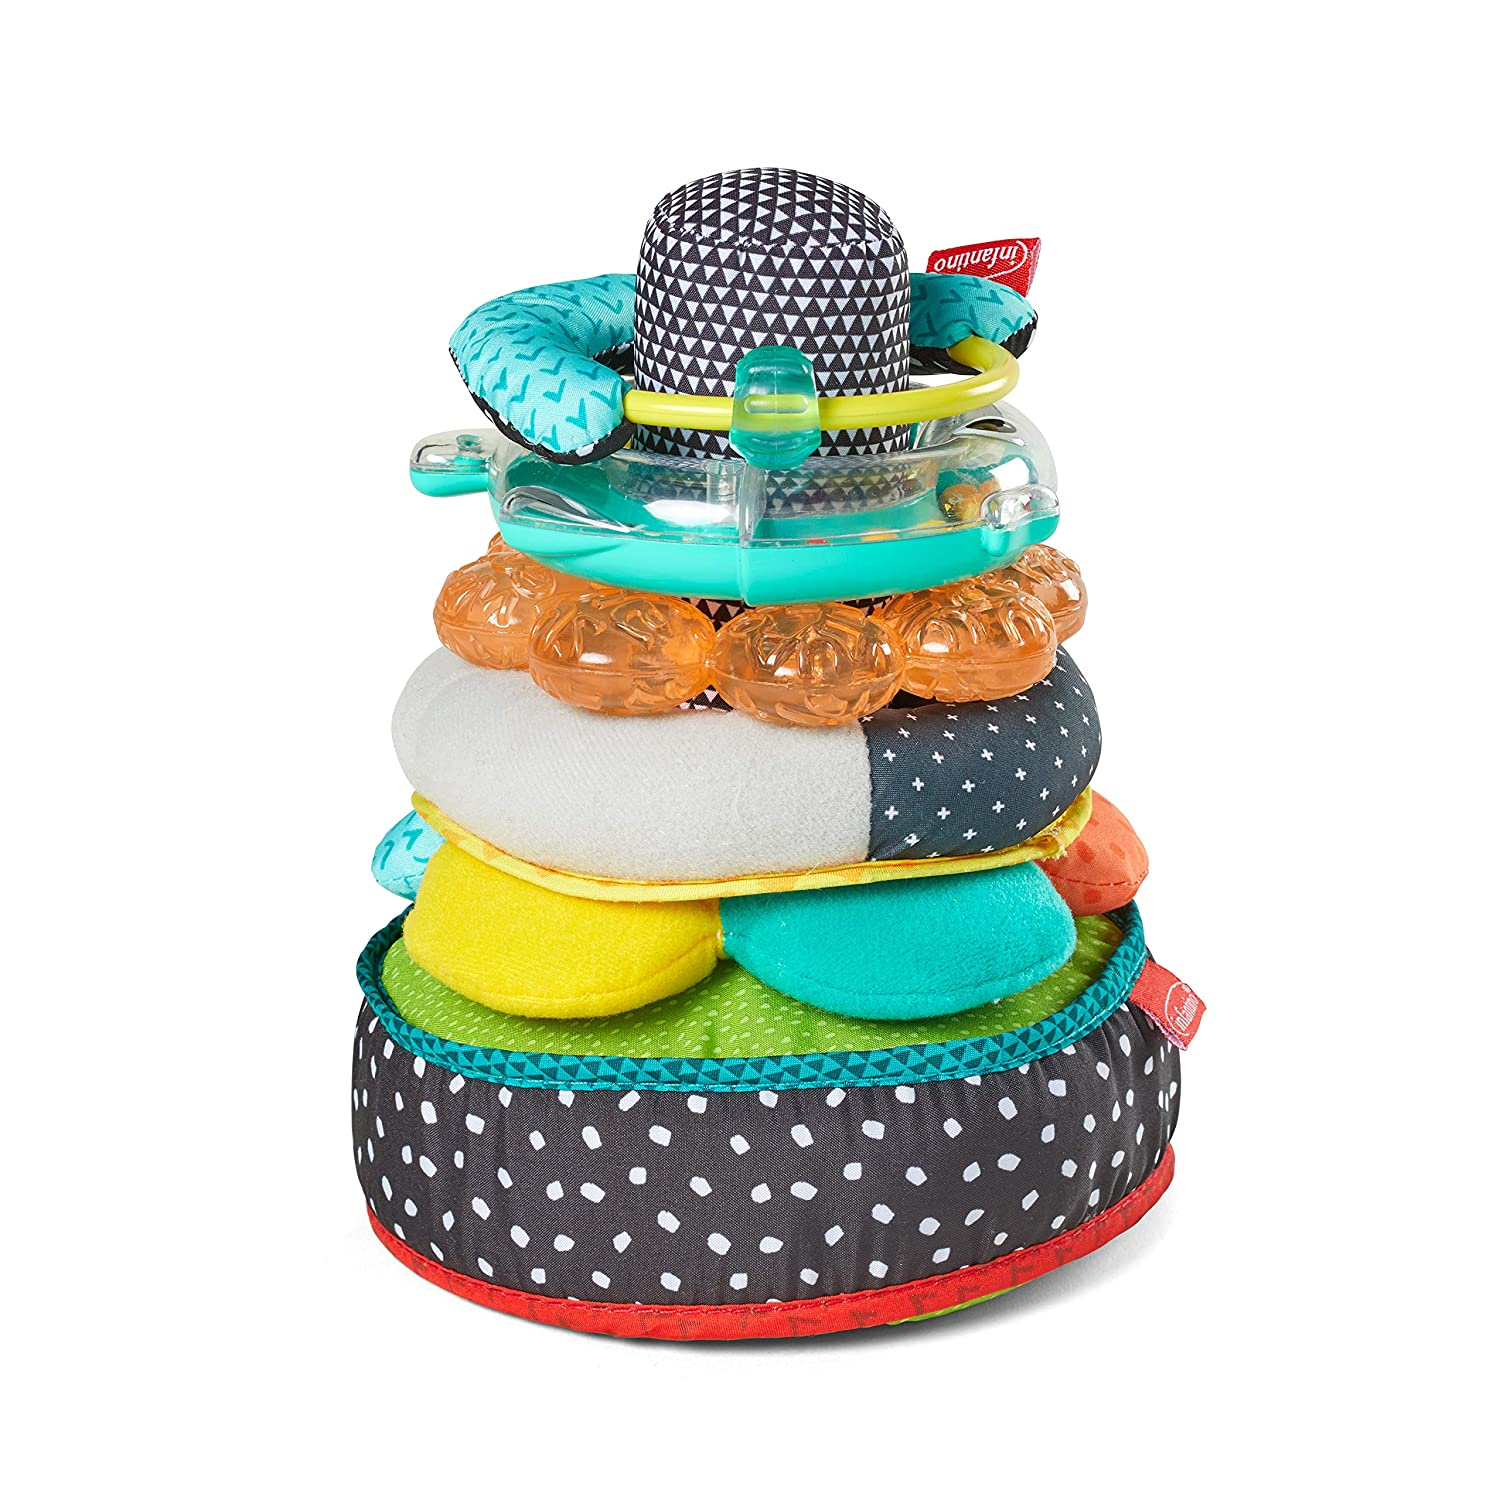 Infantino Infantino Textures & Sounds Activity Stacker, Multi